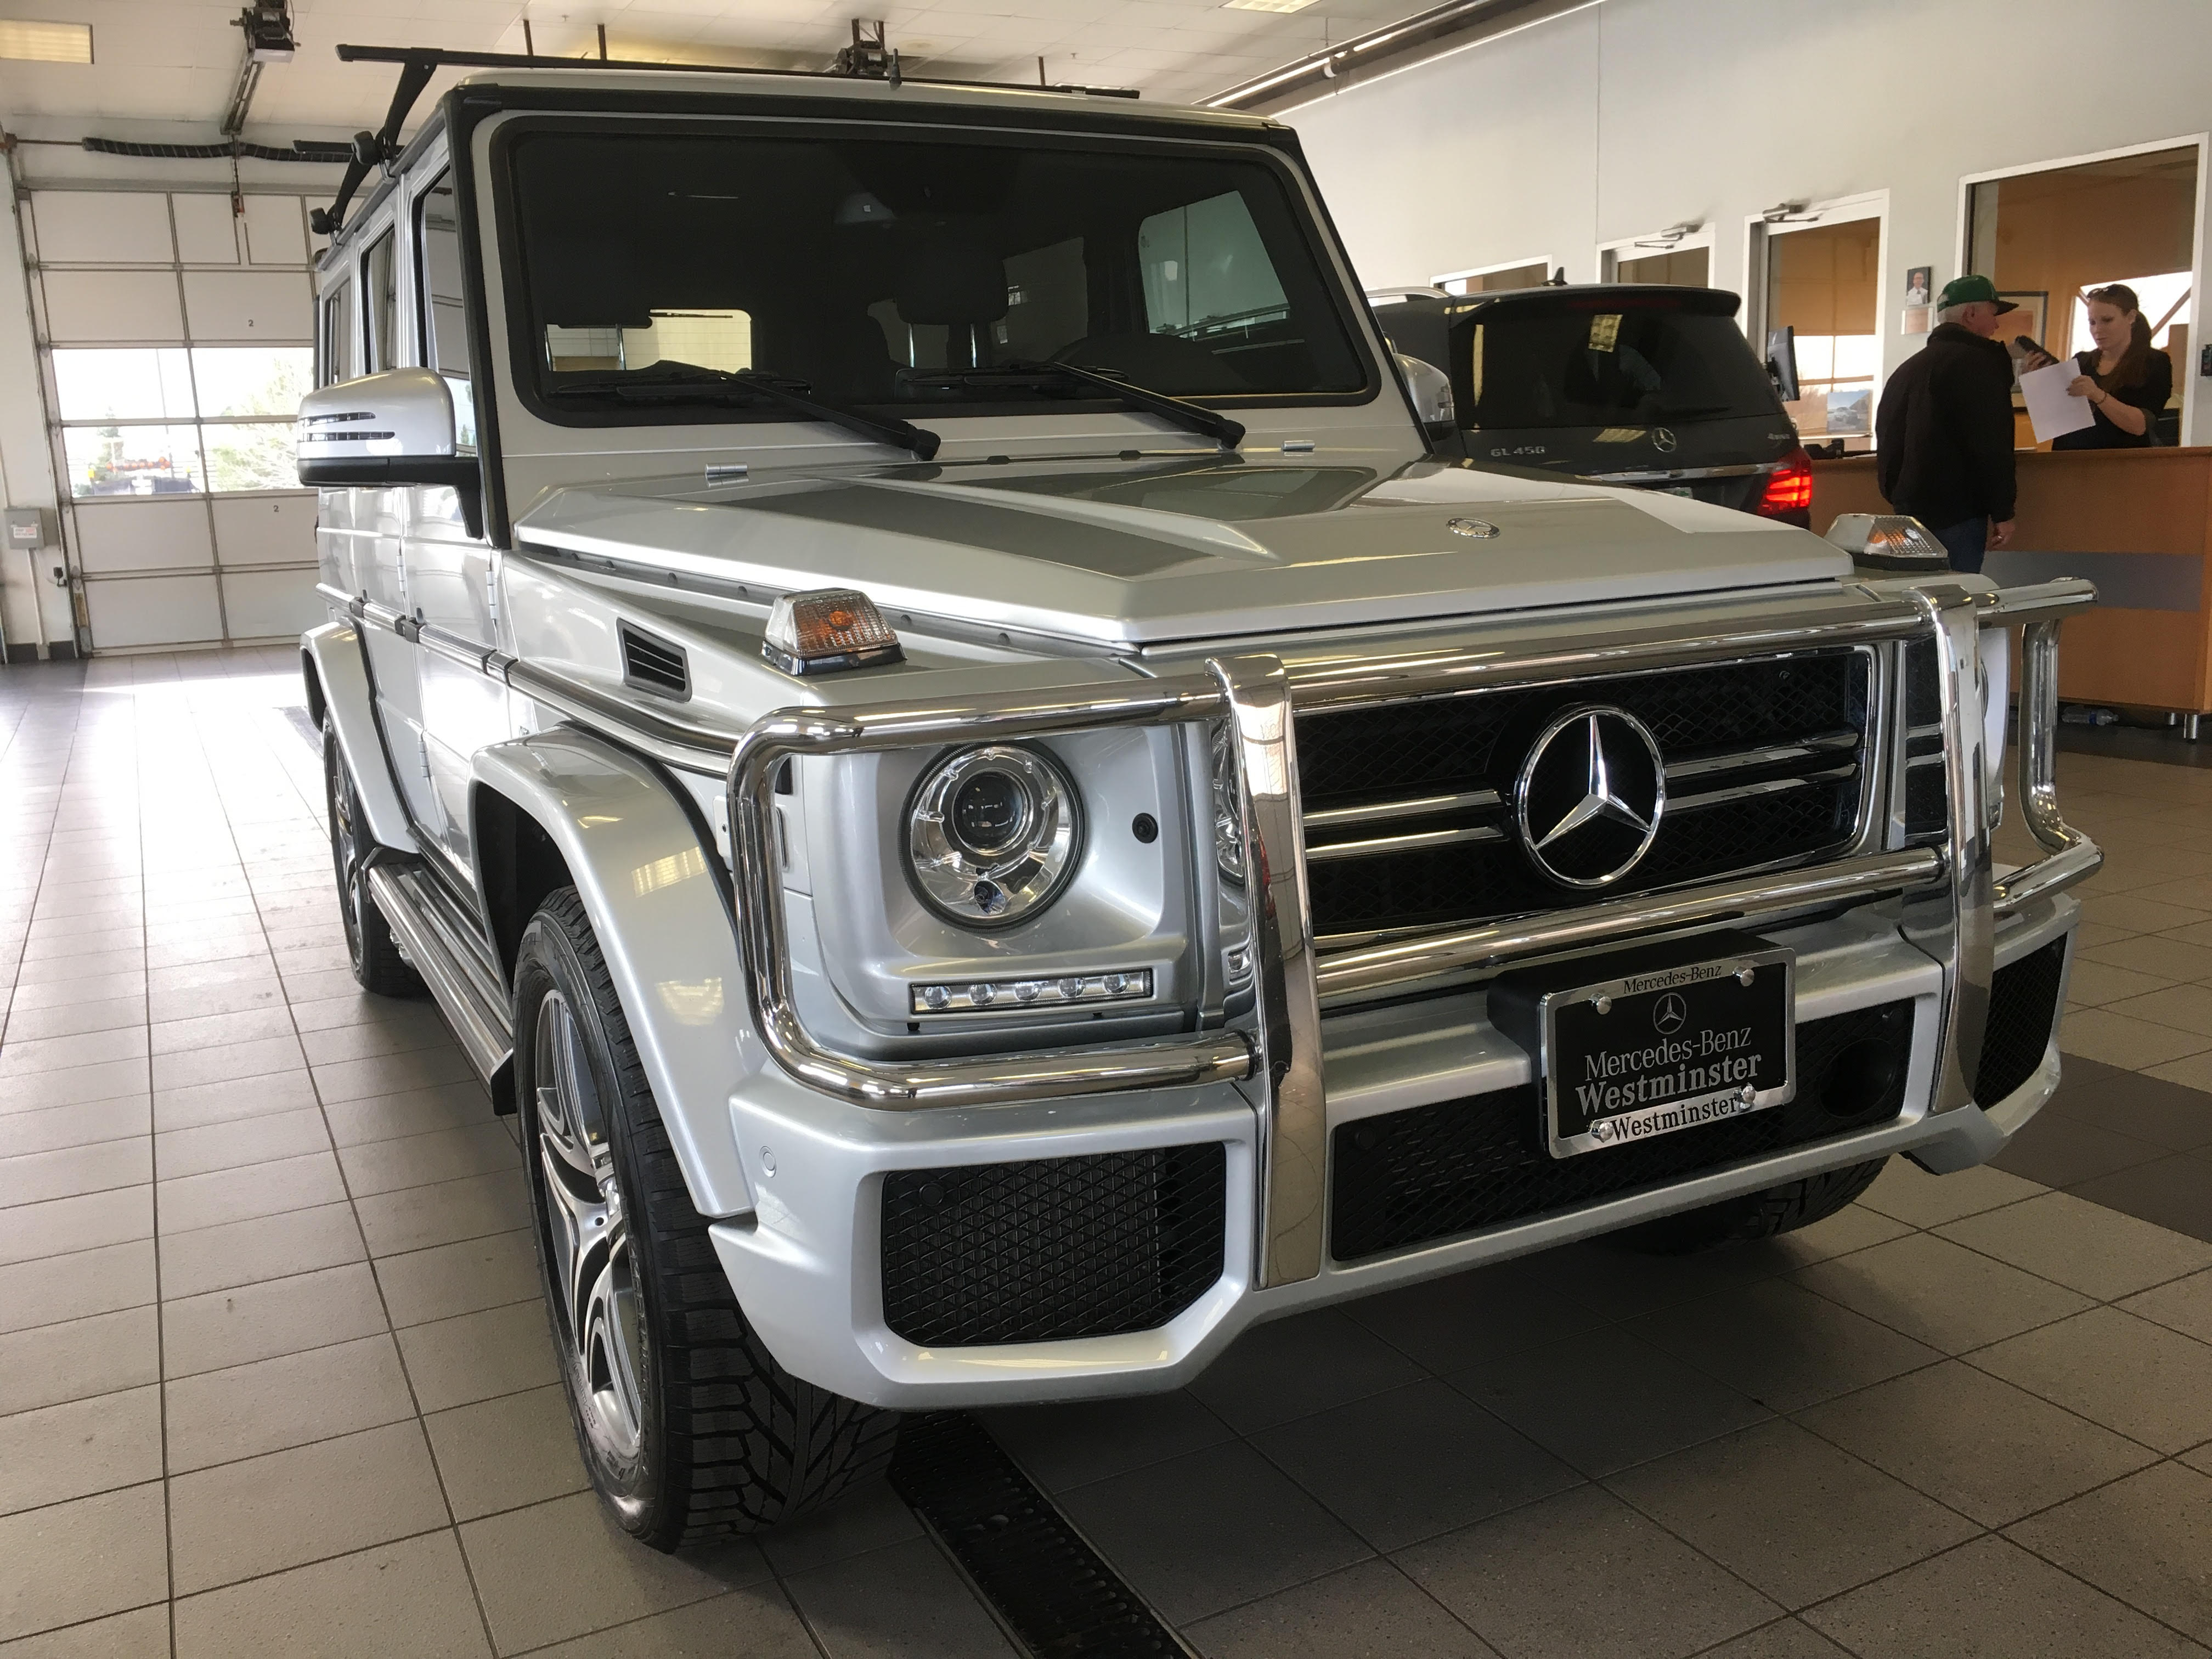 vail-limo-service-airport-transportation-shuttle-service-eagle-vail-denver-airport-mercedes-g63-g-wagon